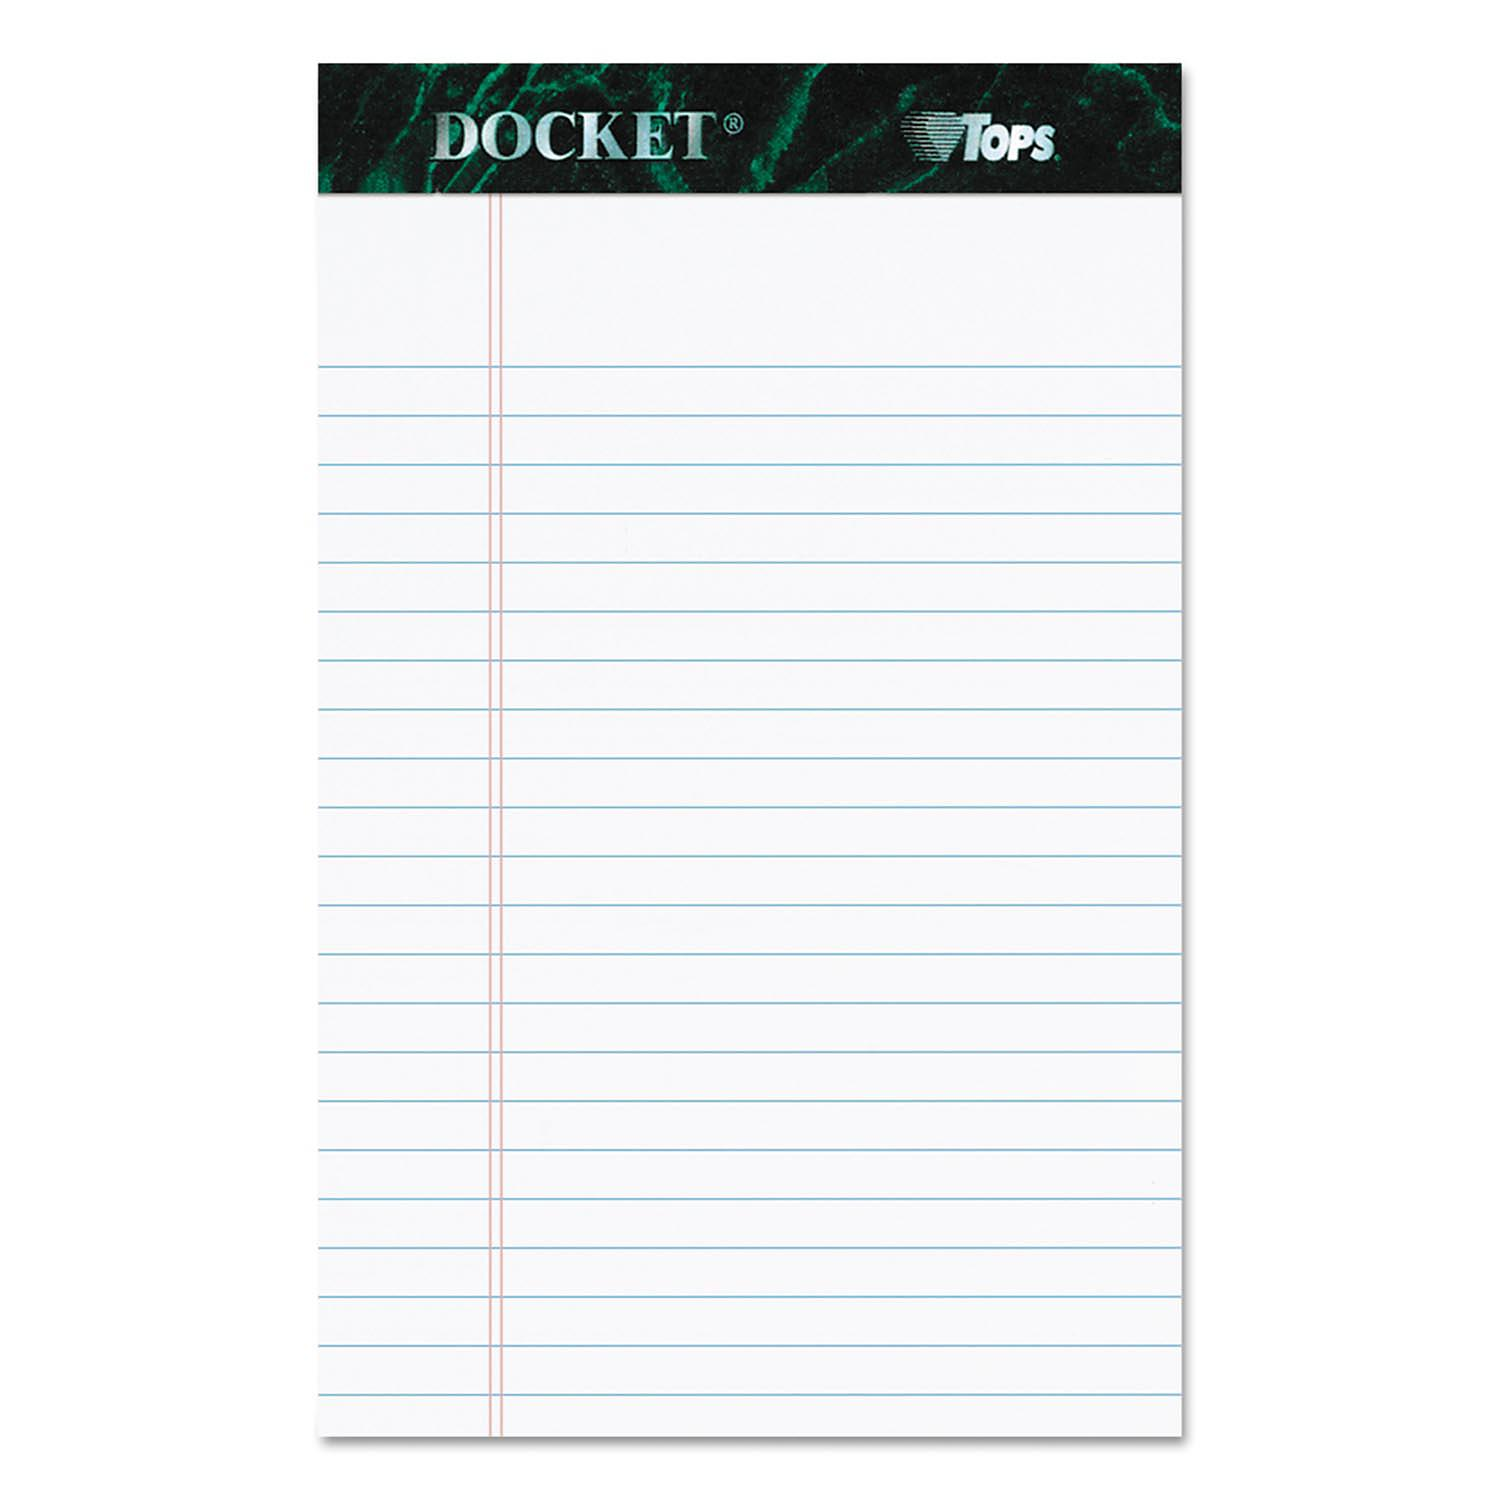 TOPS Docket Ruled Perforated Pads Legal Rule 5 x 8 White 12 50 Sheet Pads Pack